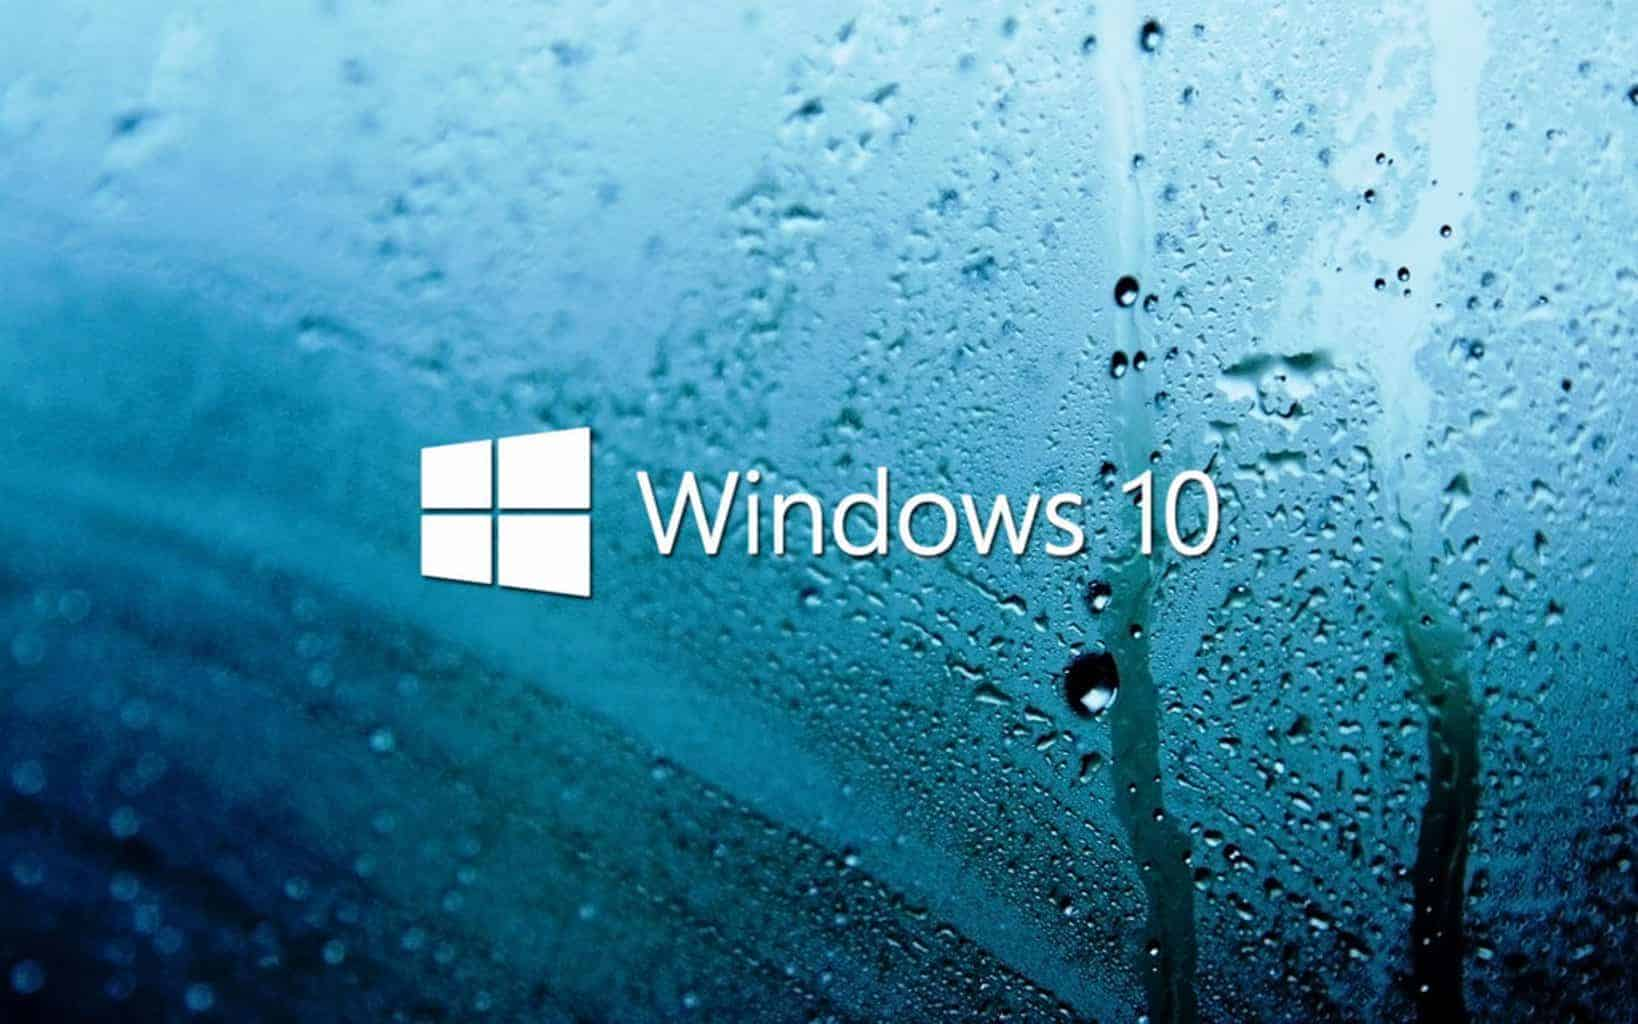 Fresh Windows 10 Wallpaper Full Background